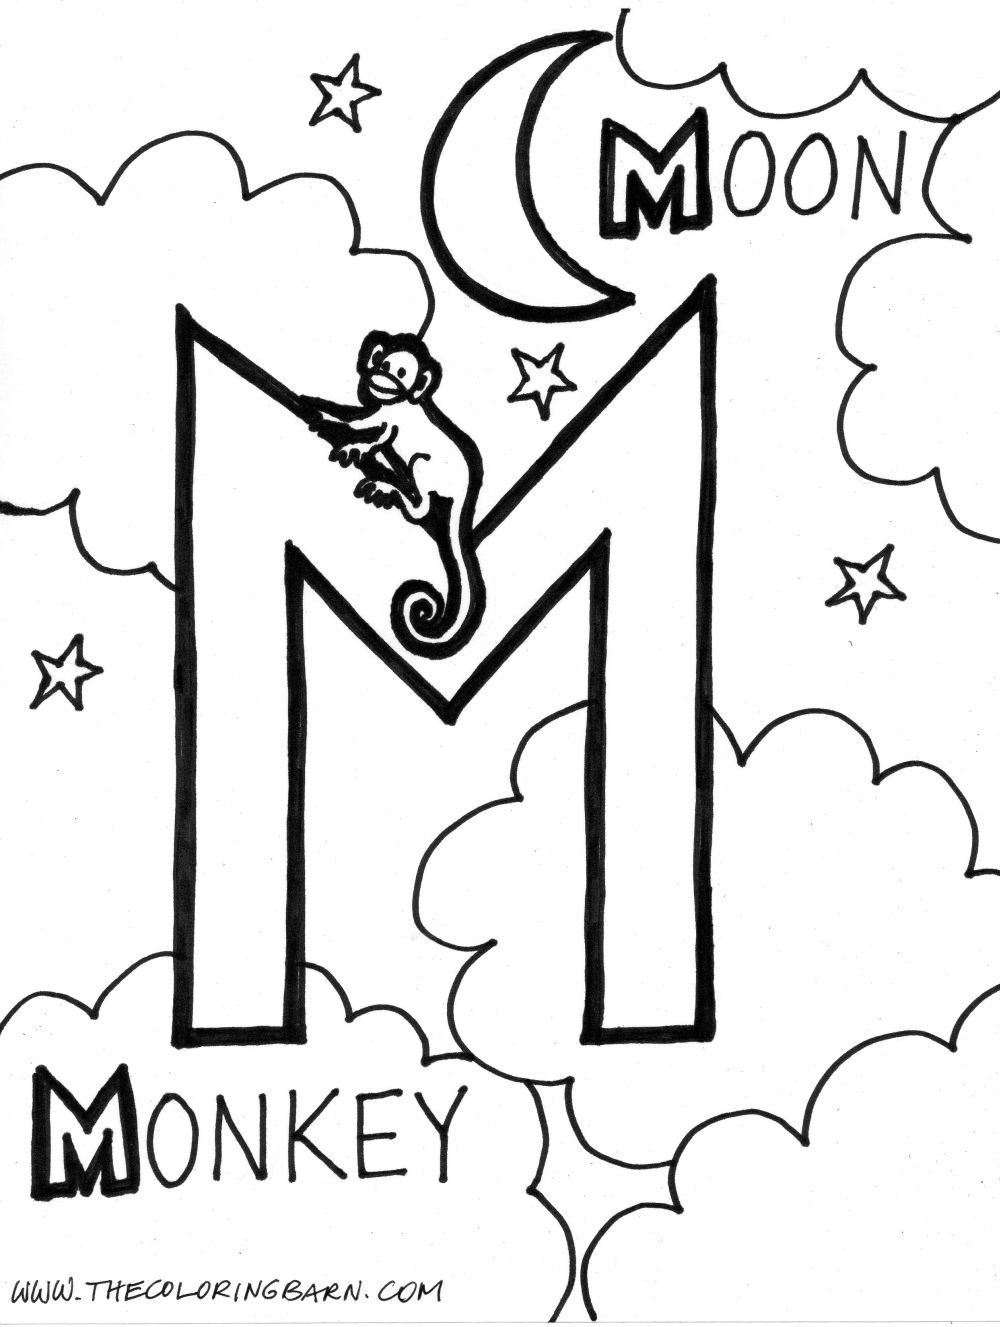 m is for moon coloring page m for moon m for monkey alphabet m pinterest monkey coloring moon m for is page